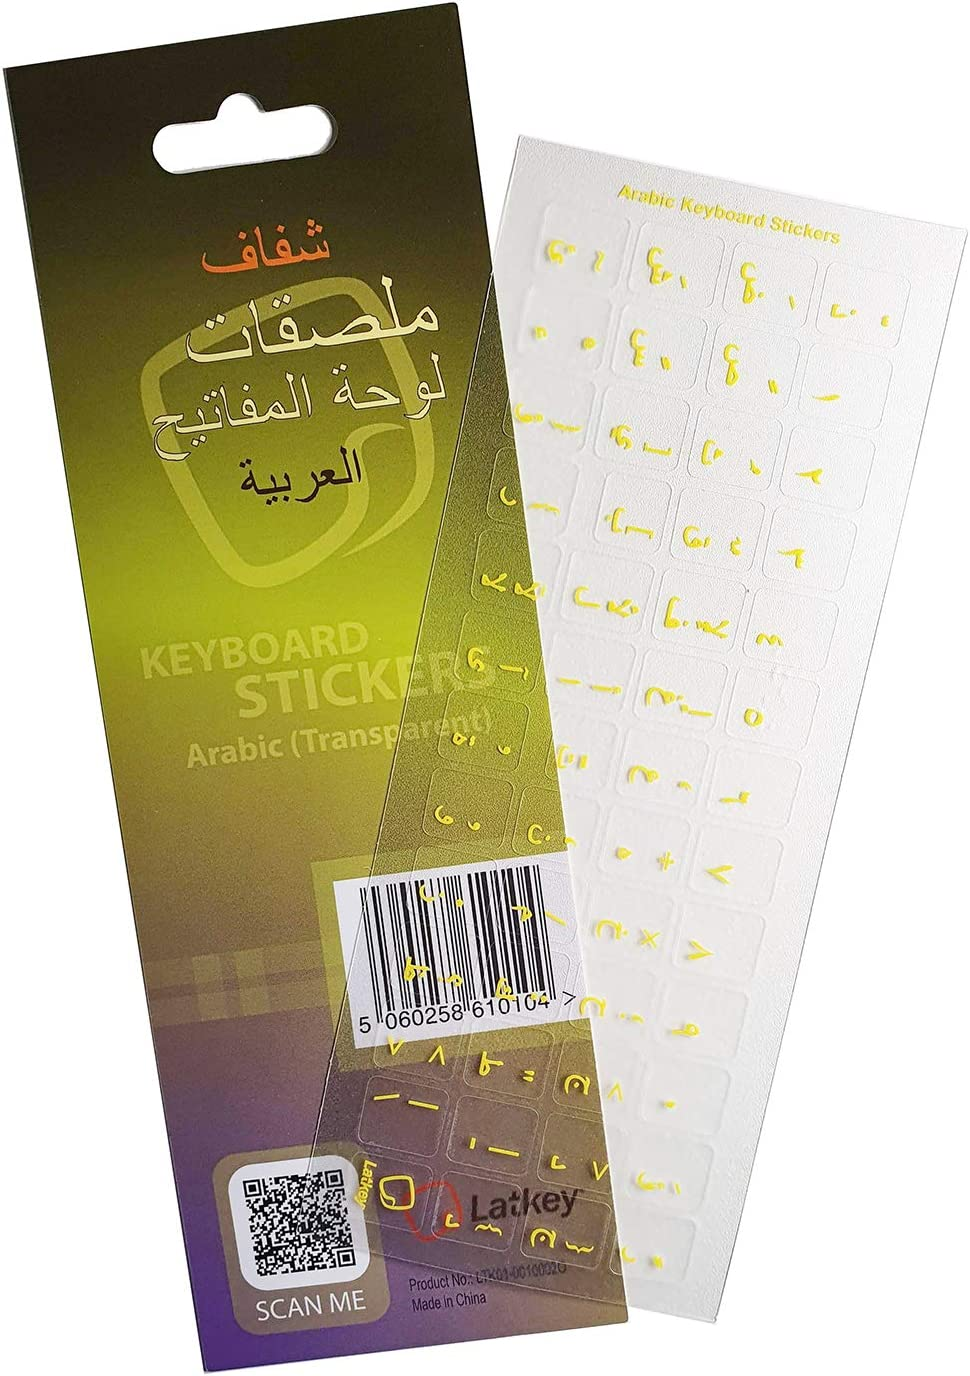 Arabic Keyboard Stickers (Yellow Letters, Transparent Background) for Laptop, Desktop PC Computer, MacBook - New 2020 Model